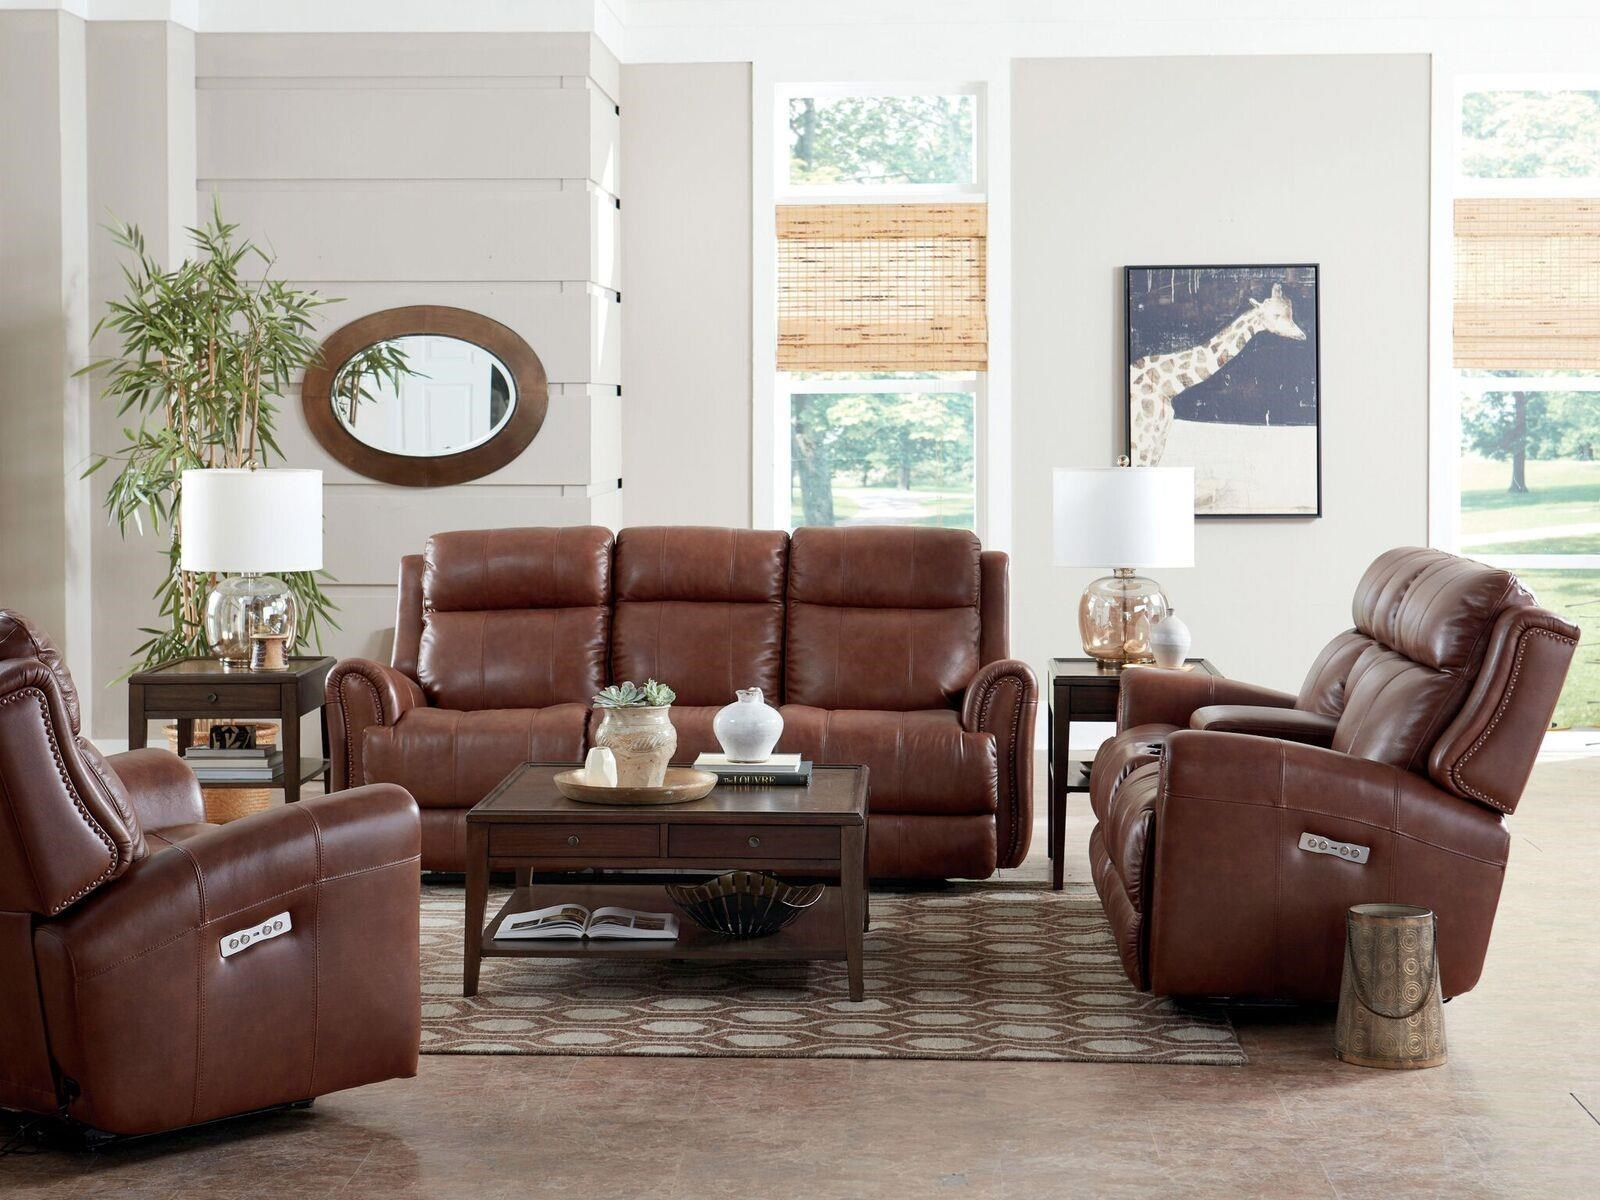 ... Bassett MarqueeLeather Pwr Reclining Sofa W/Pwr Headrest